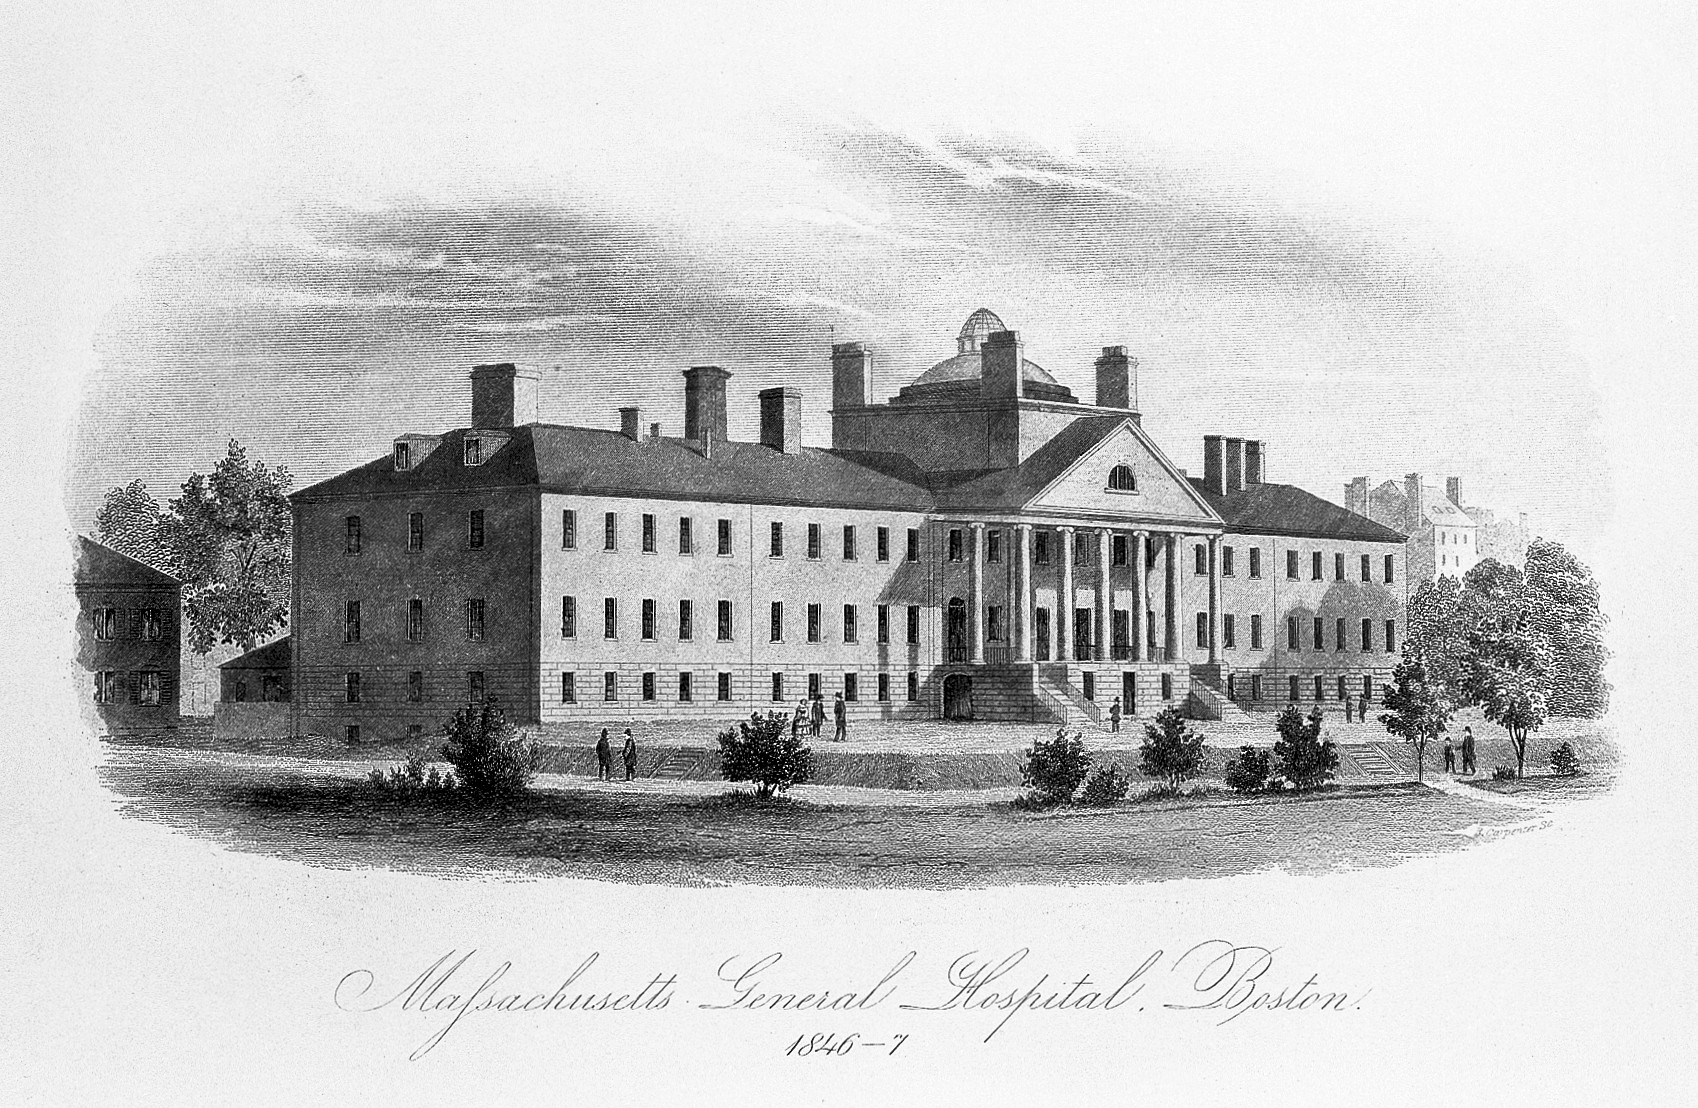 File:Massachusetts General Hospital, Boston, in 1846-7  Wellcome